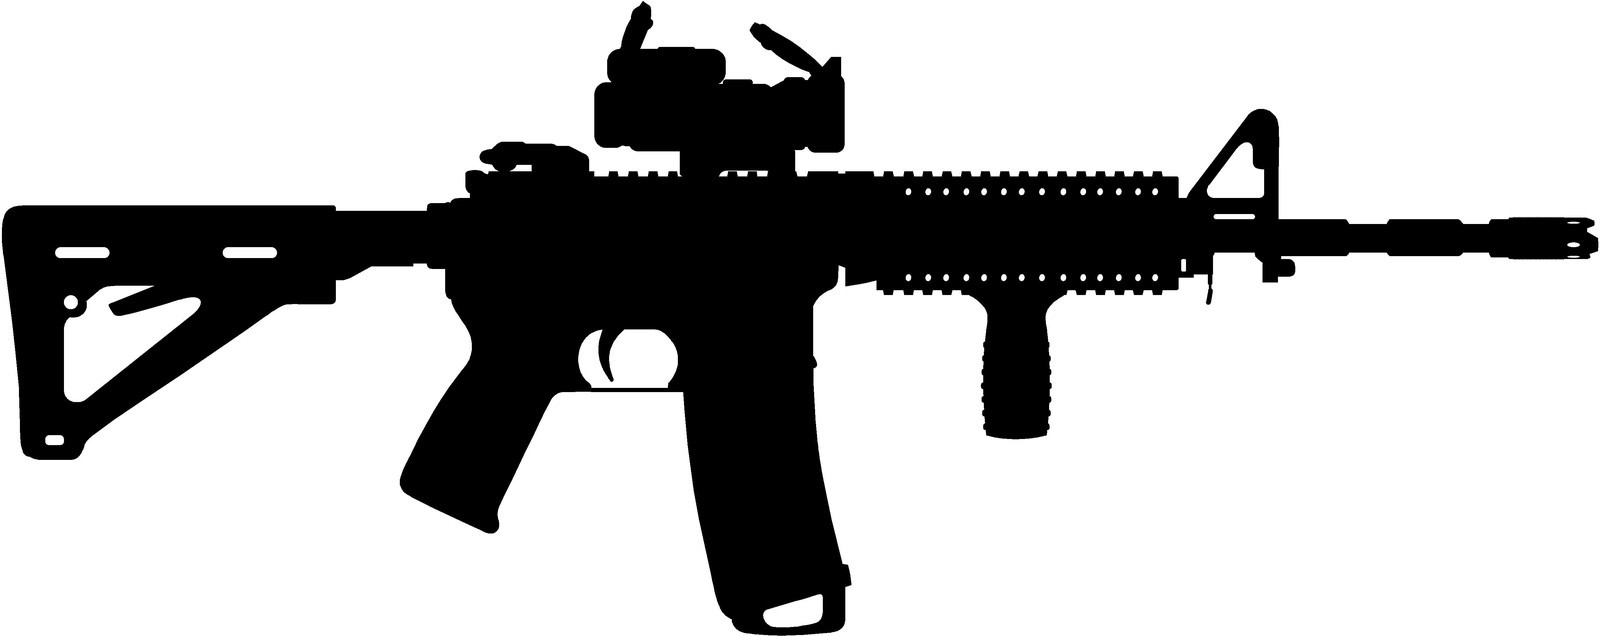 Royalty free ar 15 silhouette clipart.